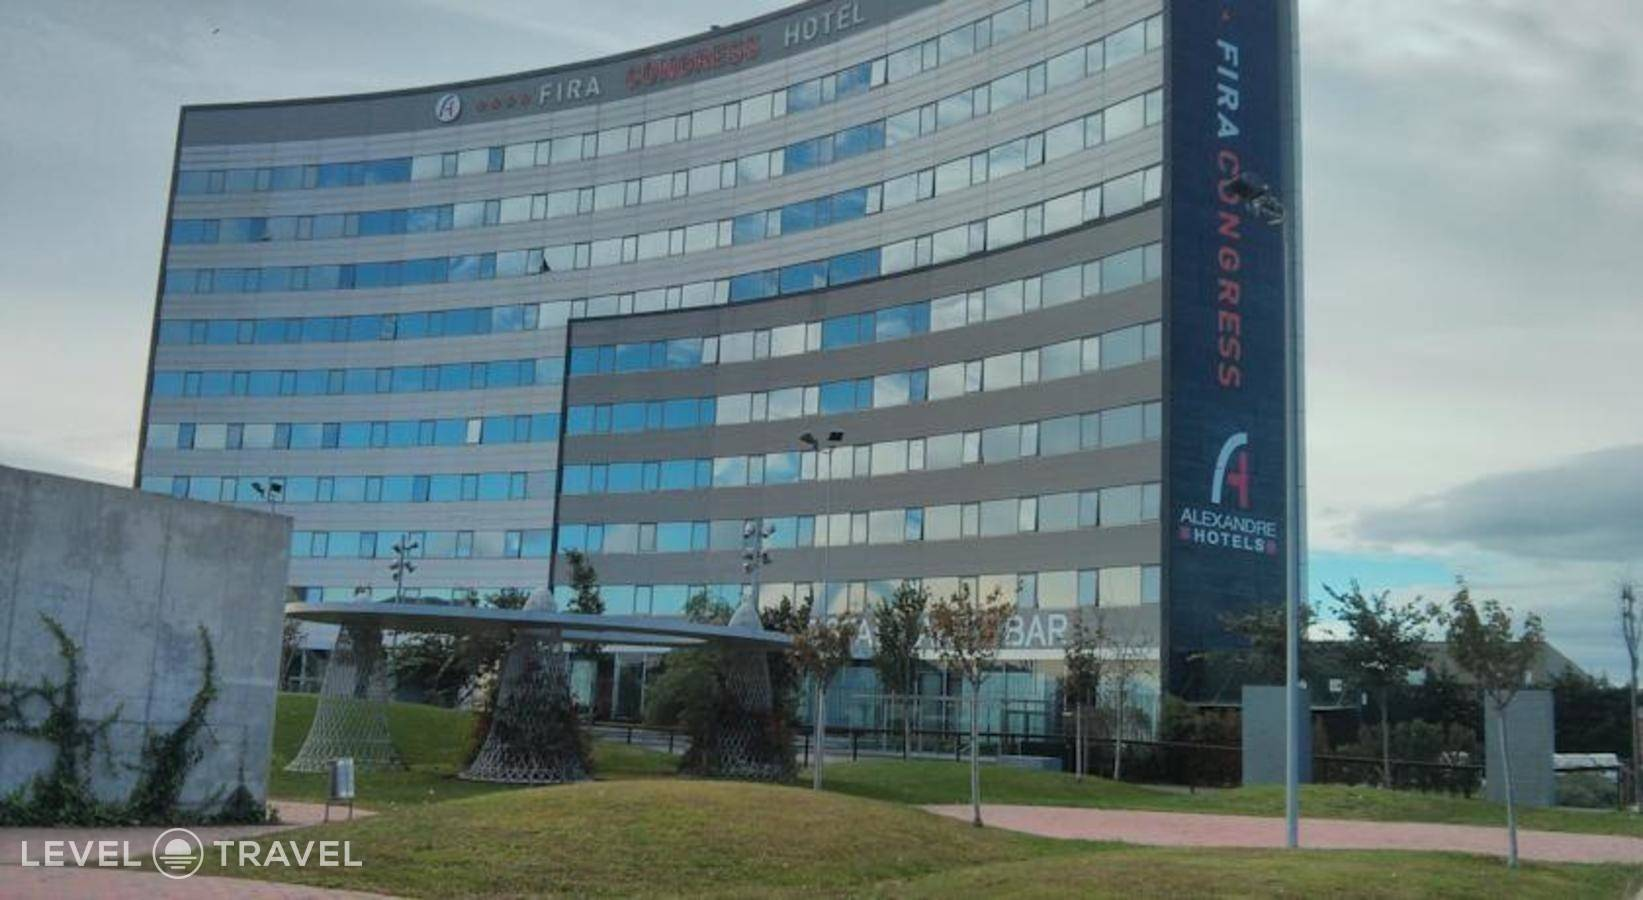 Тур в Fira Congress Hotel, Барселона